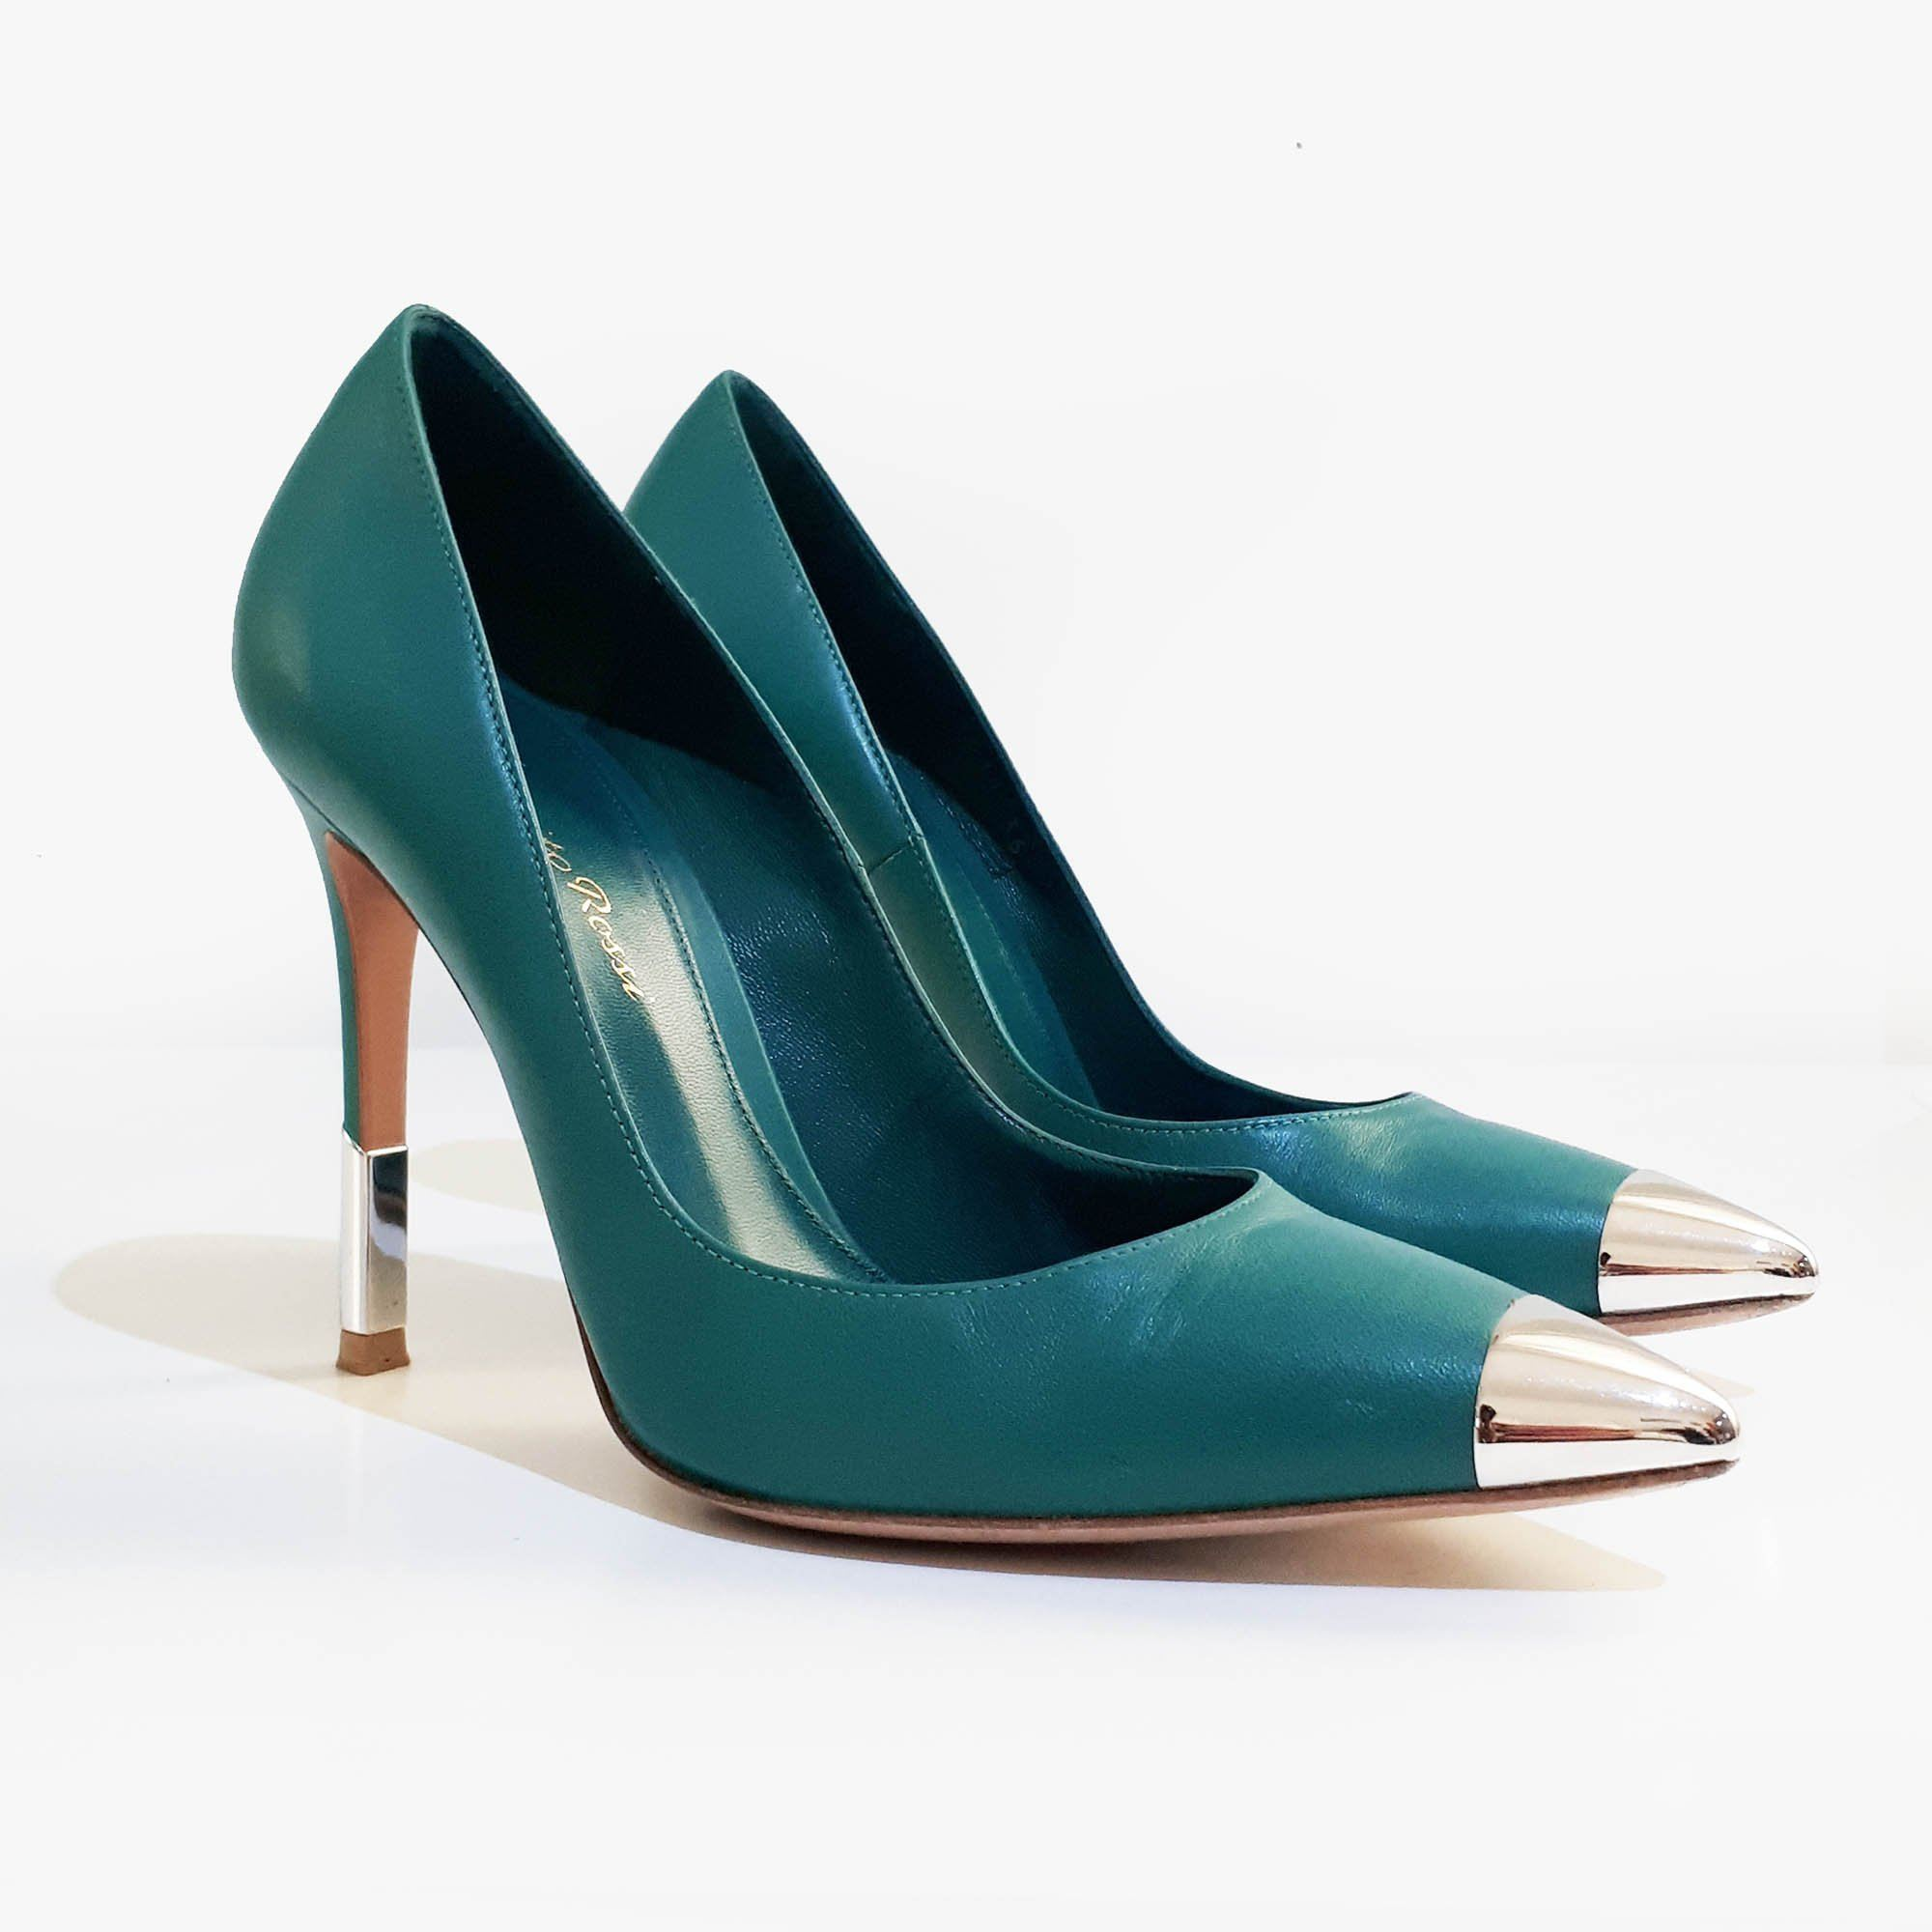 Gianvito Rossi Leather and PVC Pointed Toe Pumps – Garderobe